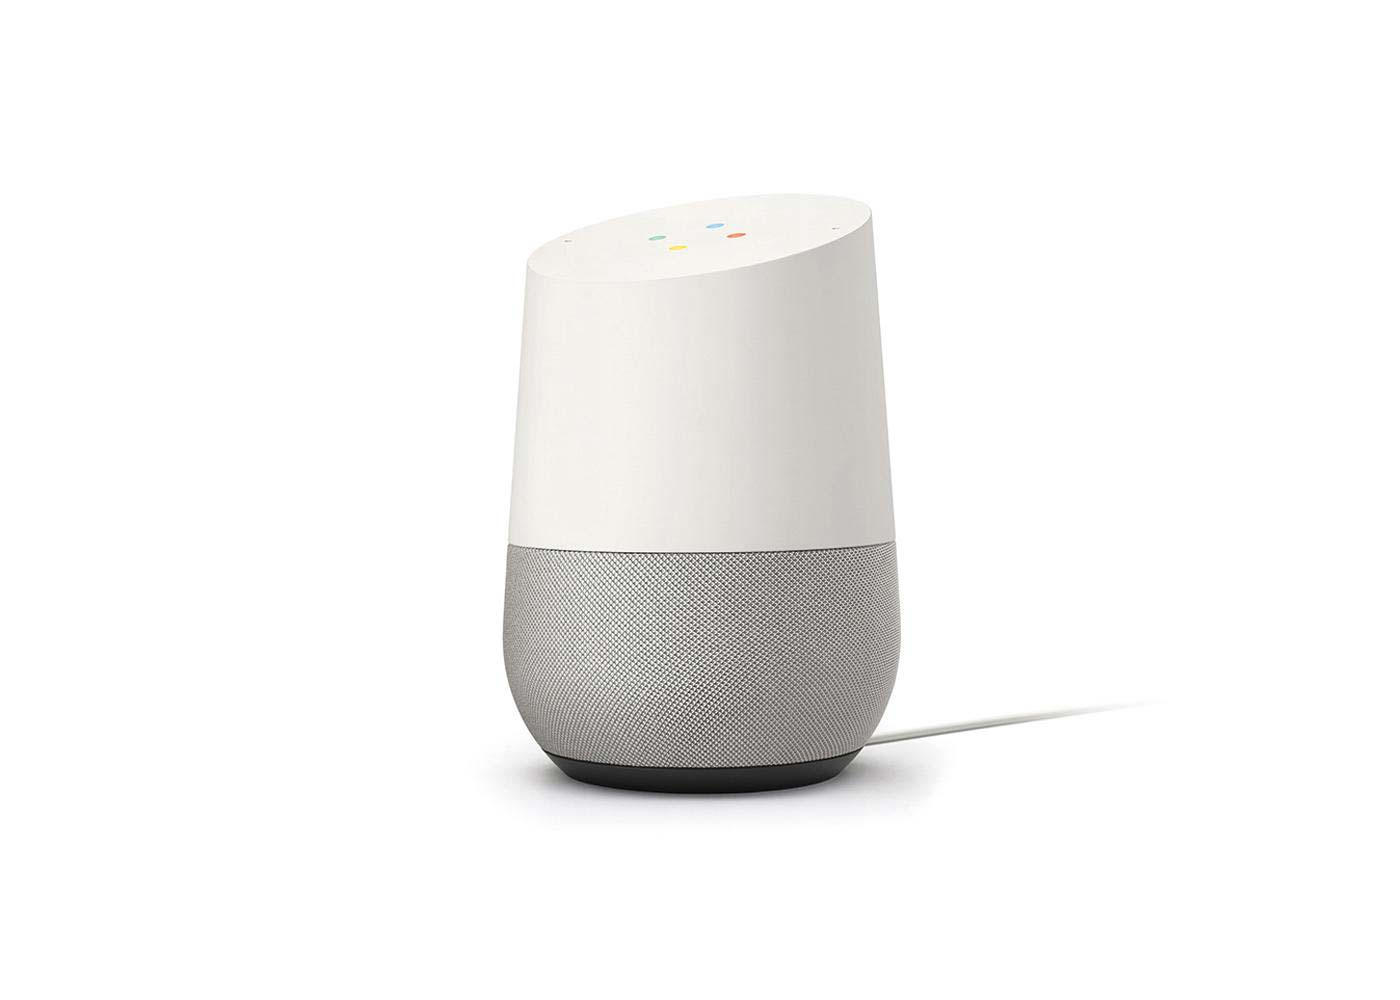 Gifts for Couples: Google Home